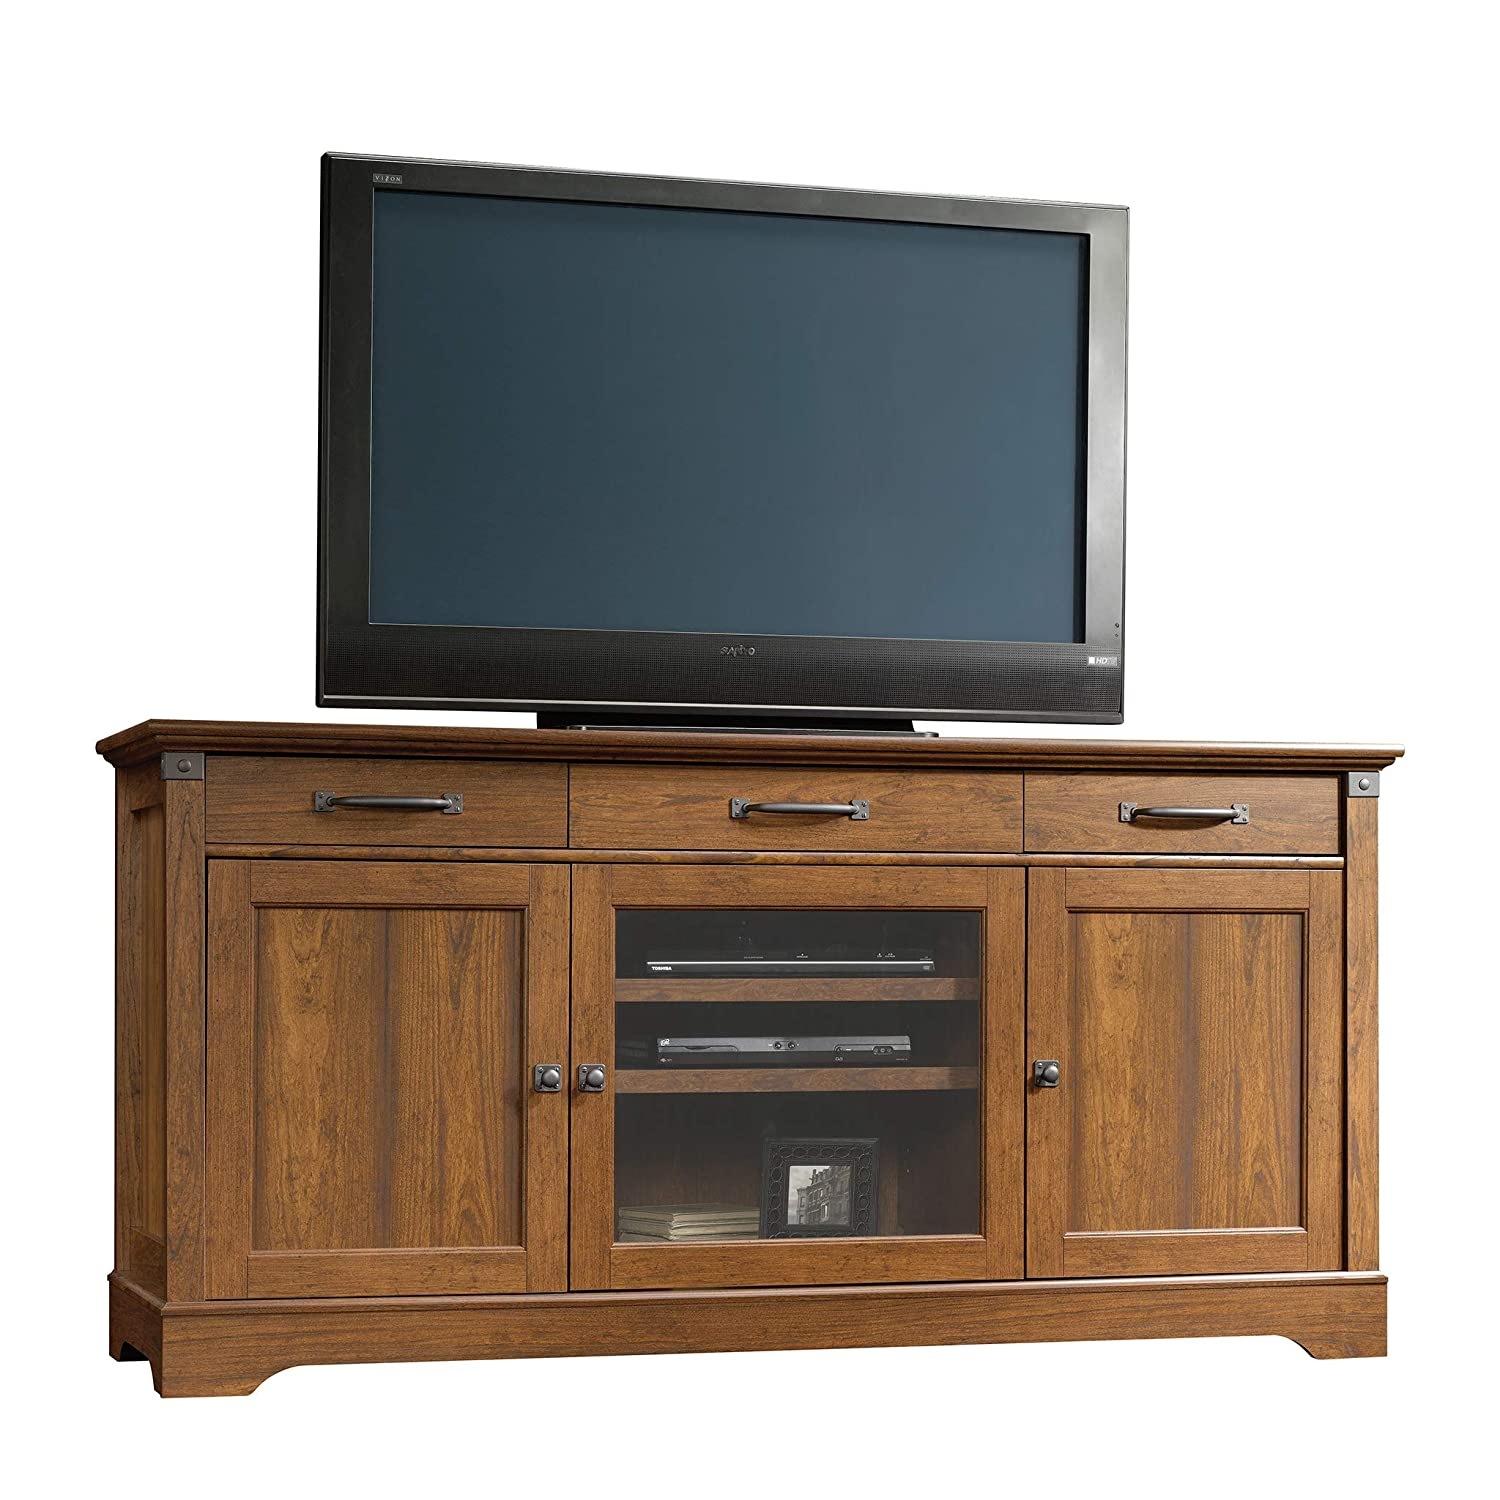 Sauder 415572 Carson Forge Credenza, For For TVs up to 70 , Washington Cherry